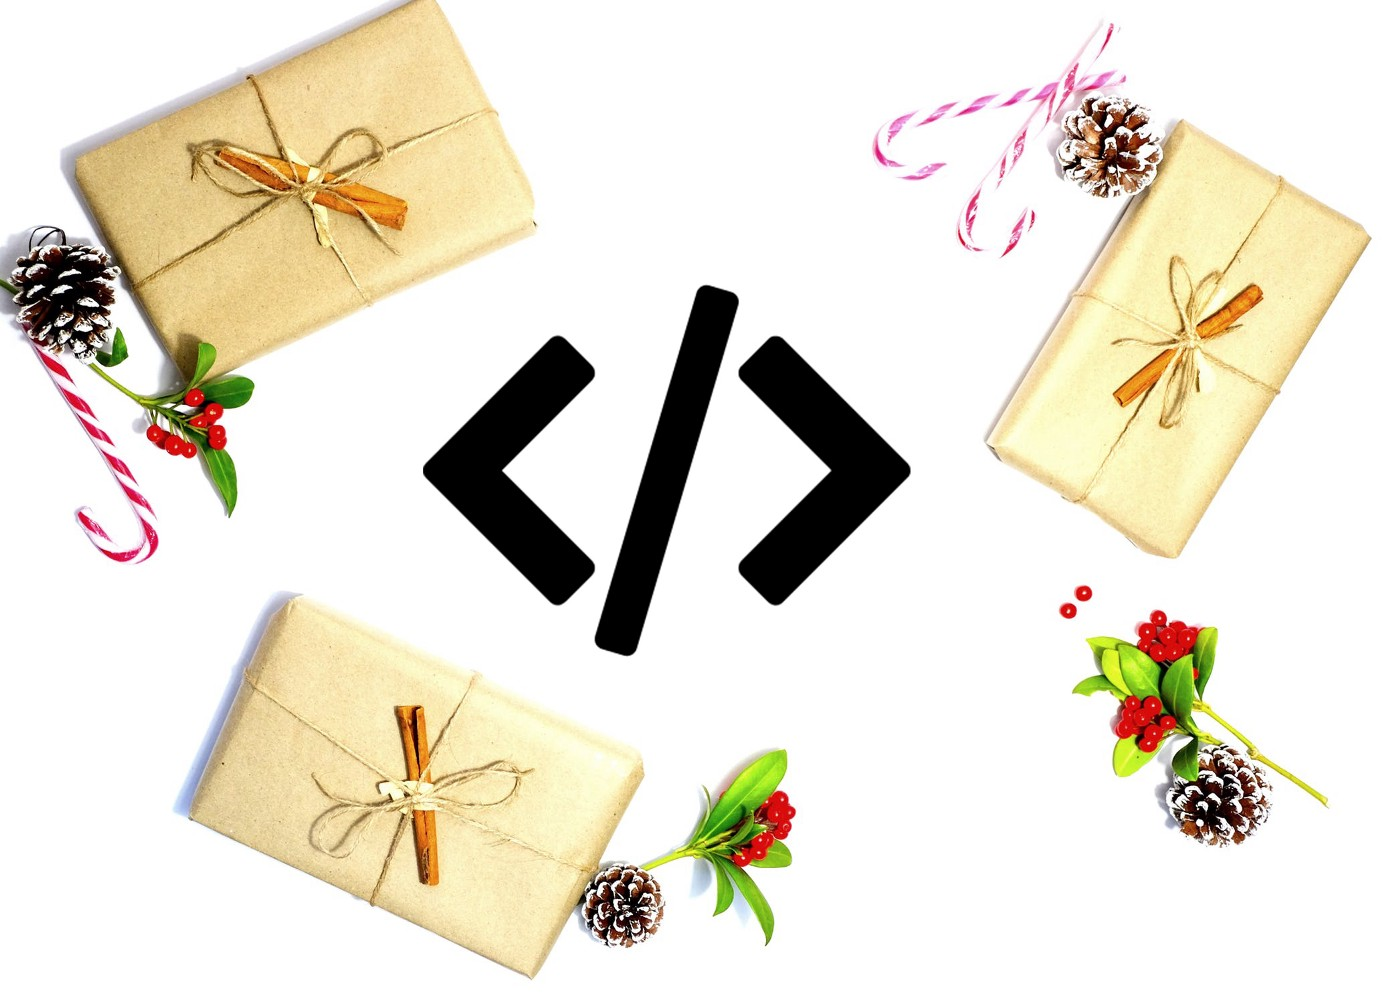 b6e9b64a8f6 25 Gift Ideas & Products For Programmers - Brad Traversy - Medium